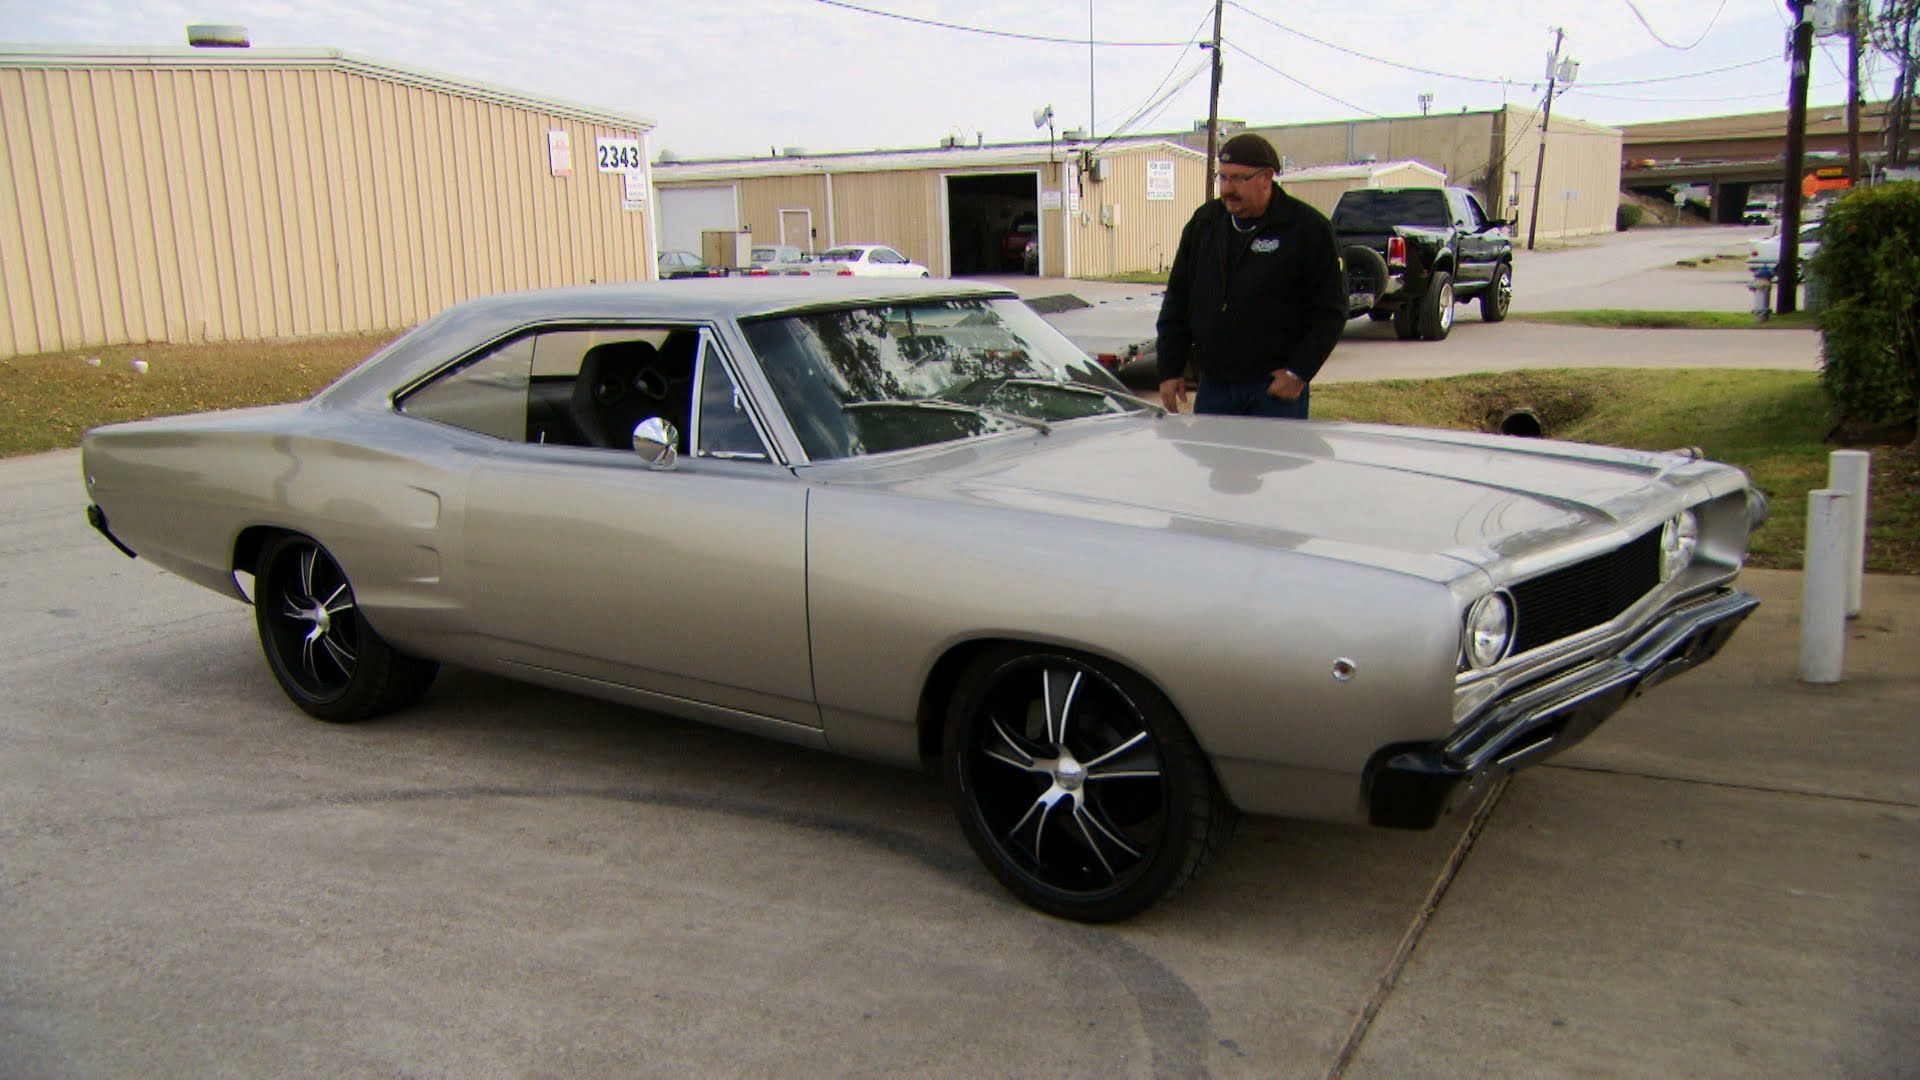 Gas monkey garage gas monkey pinterest garage monkey and gas - Gas Monkey Scores A 1968 Coronet